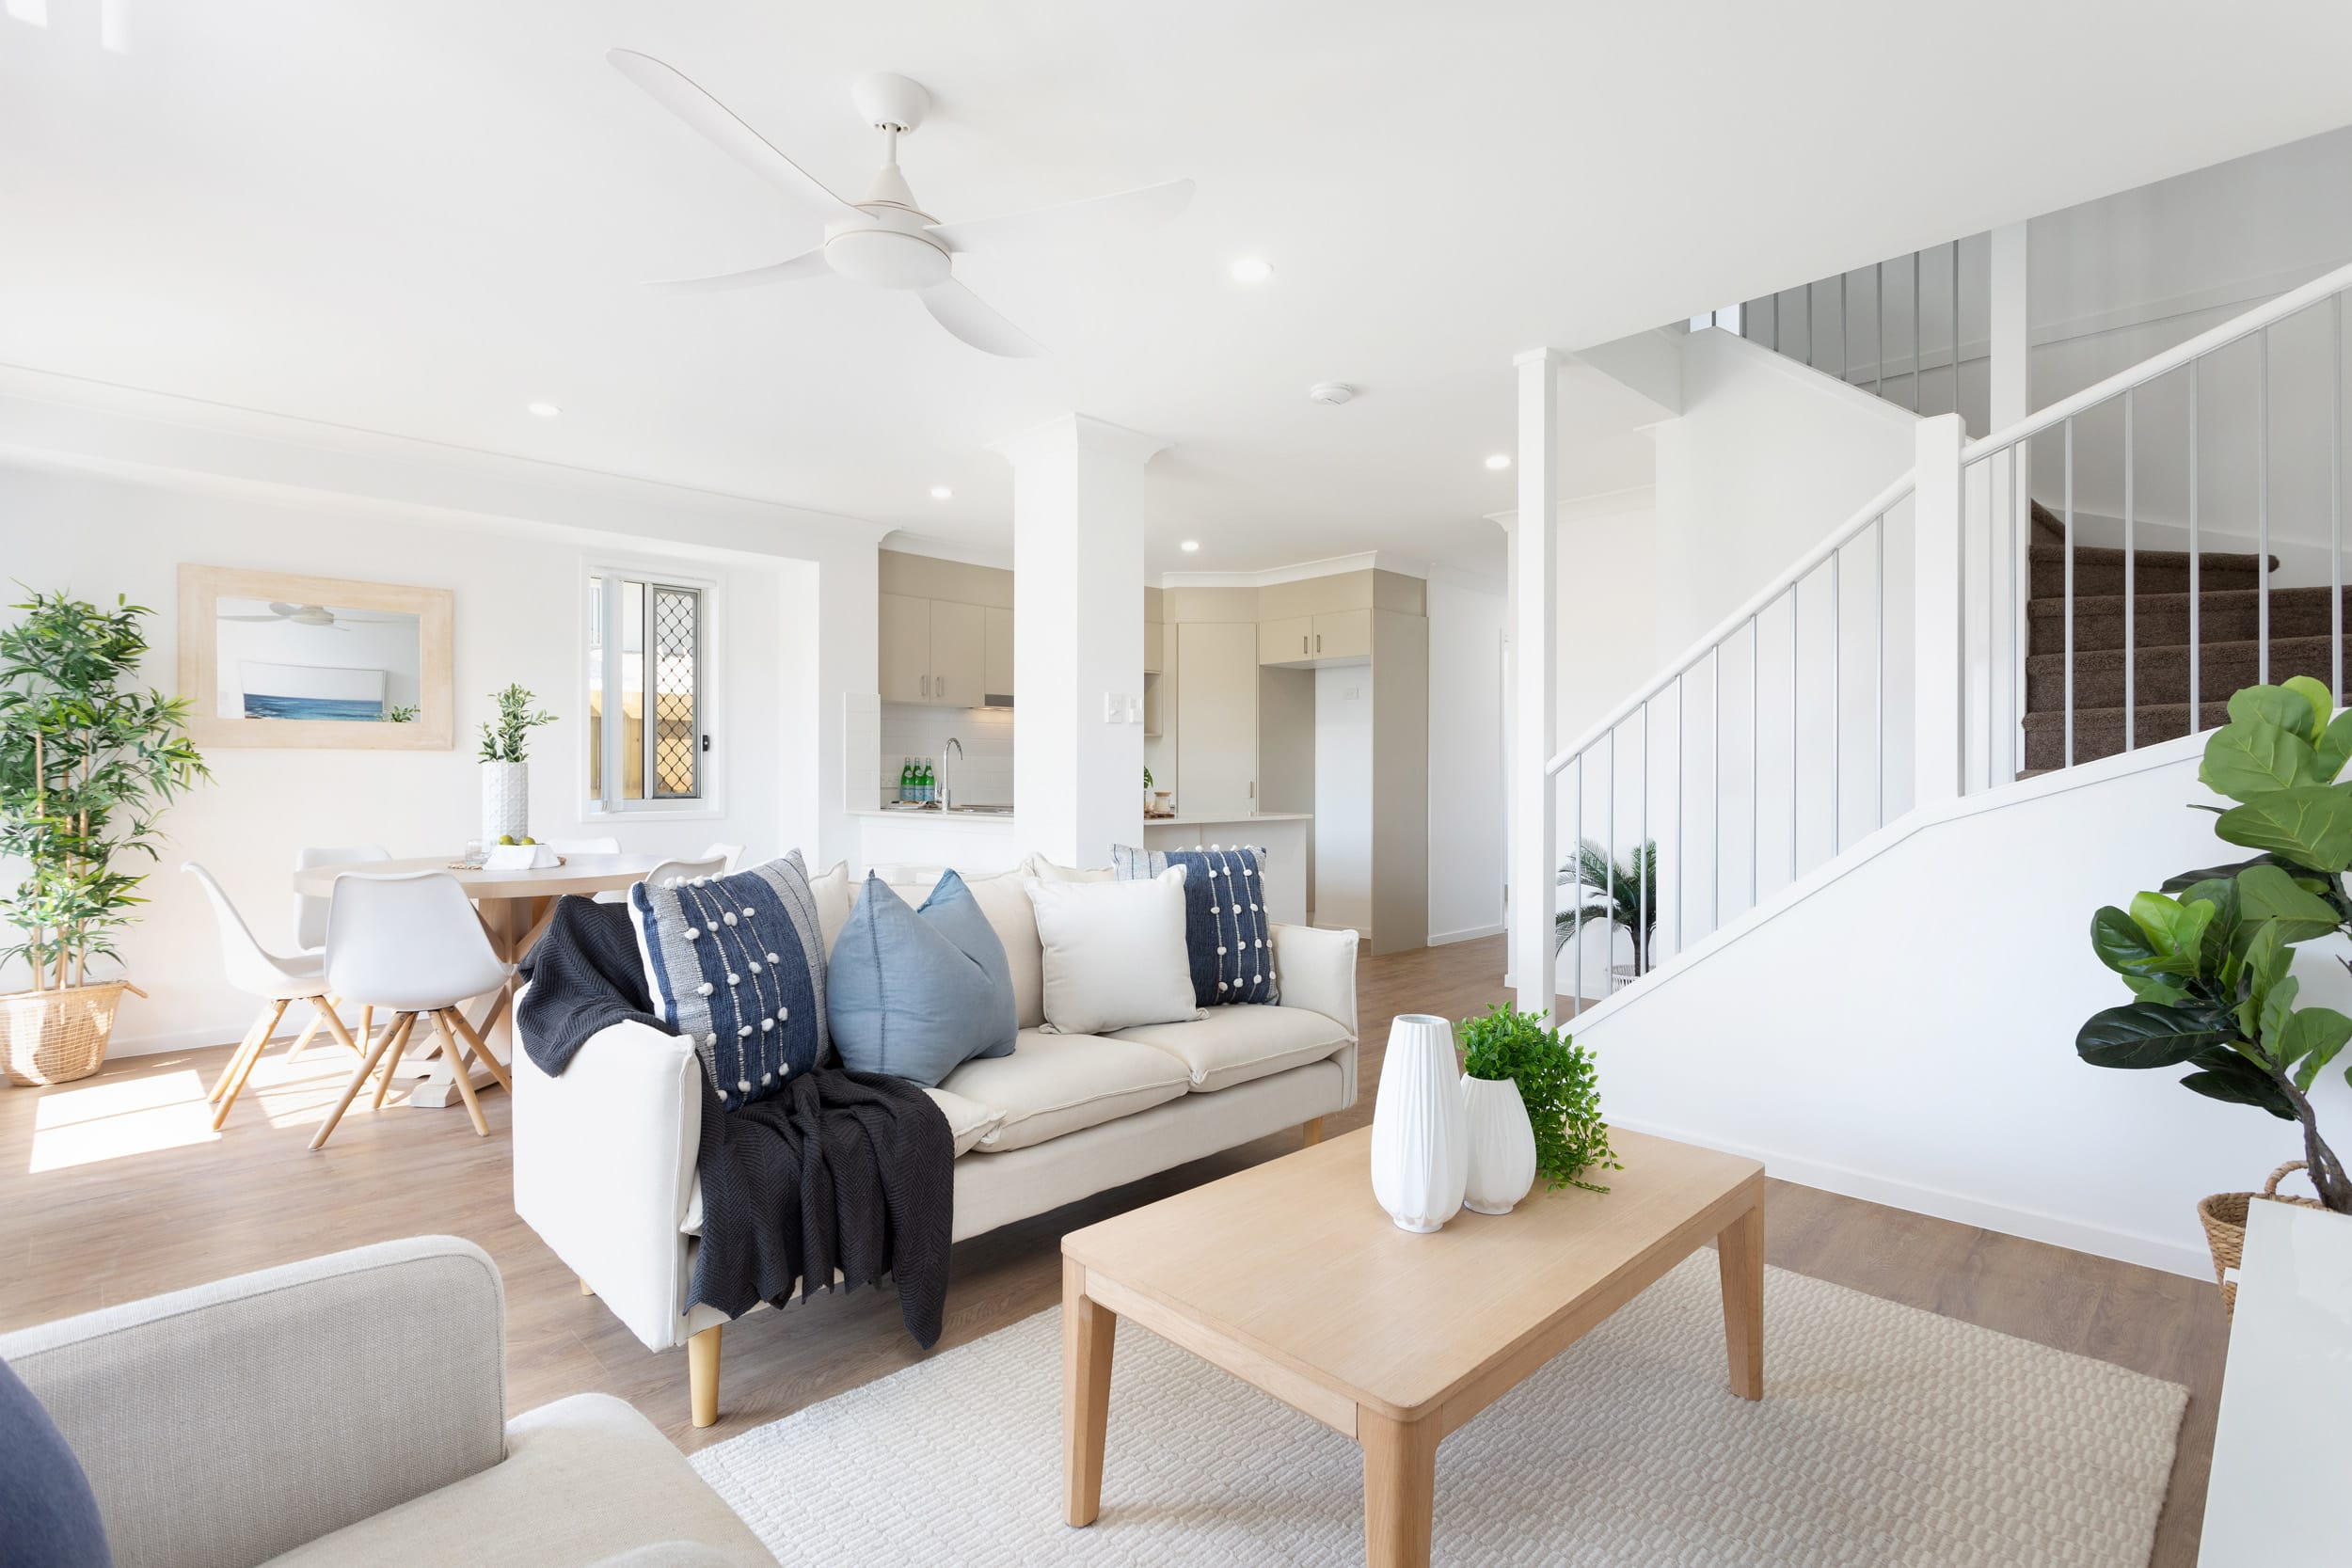 Discover Nudgee Square: 3-bedroom family homes with a shared pool from $445,000